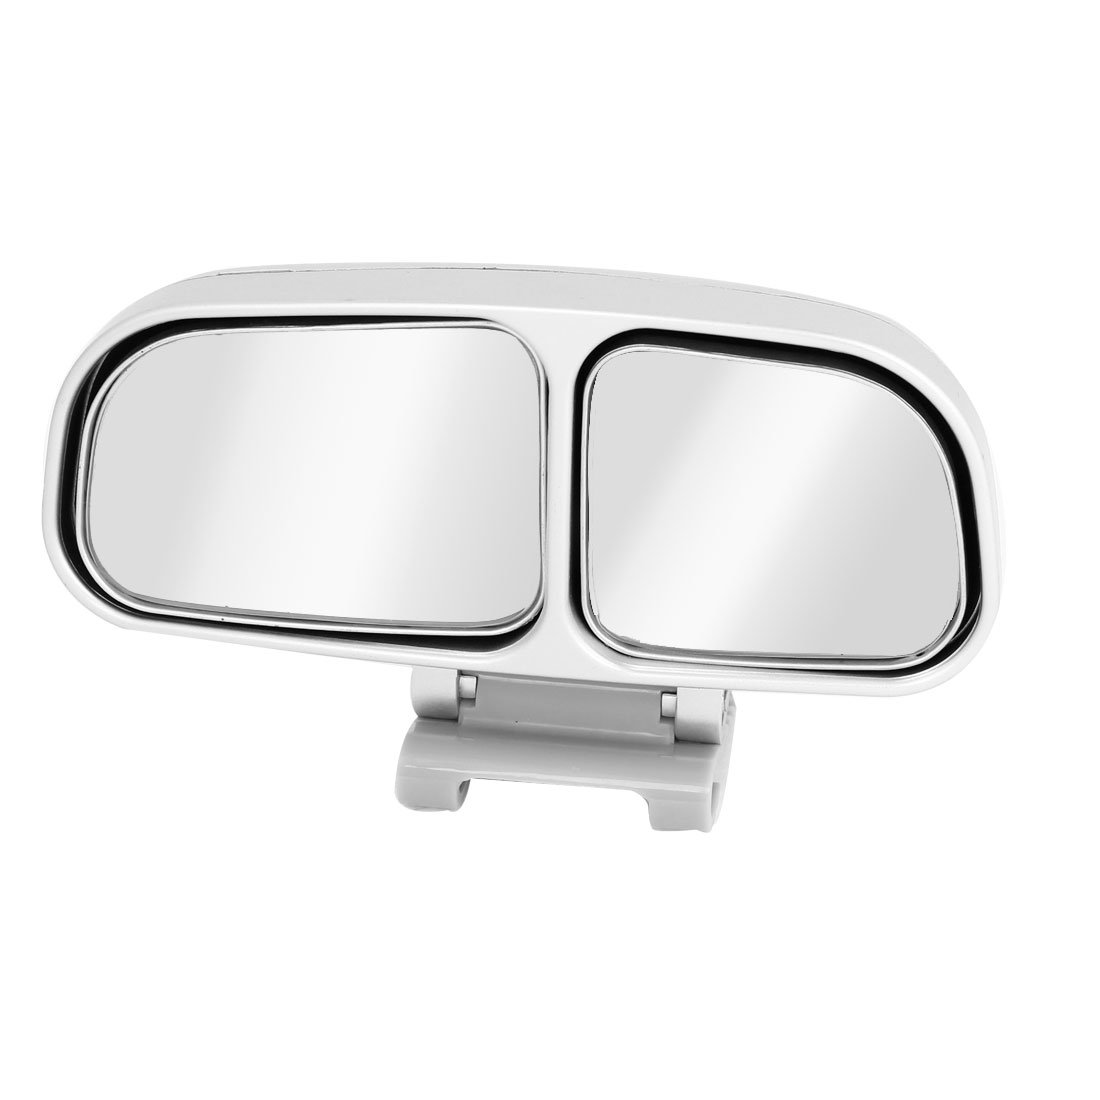 Adhesive Back Silver Tone Frame Left Blind Spot Parking Mirror for Car